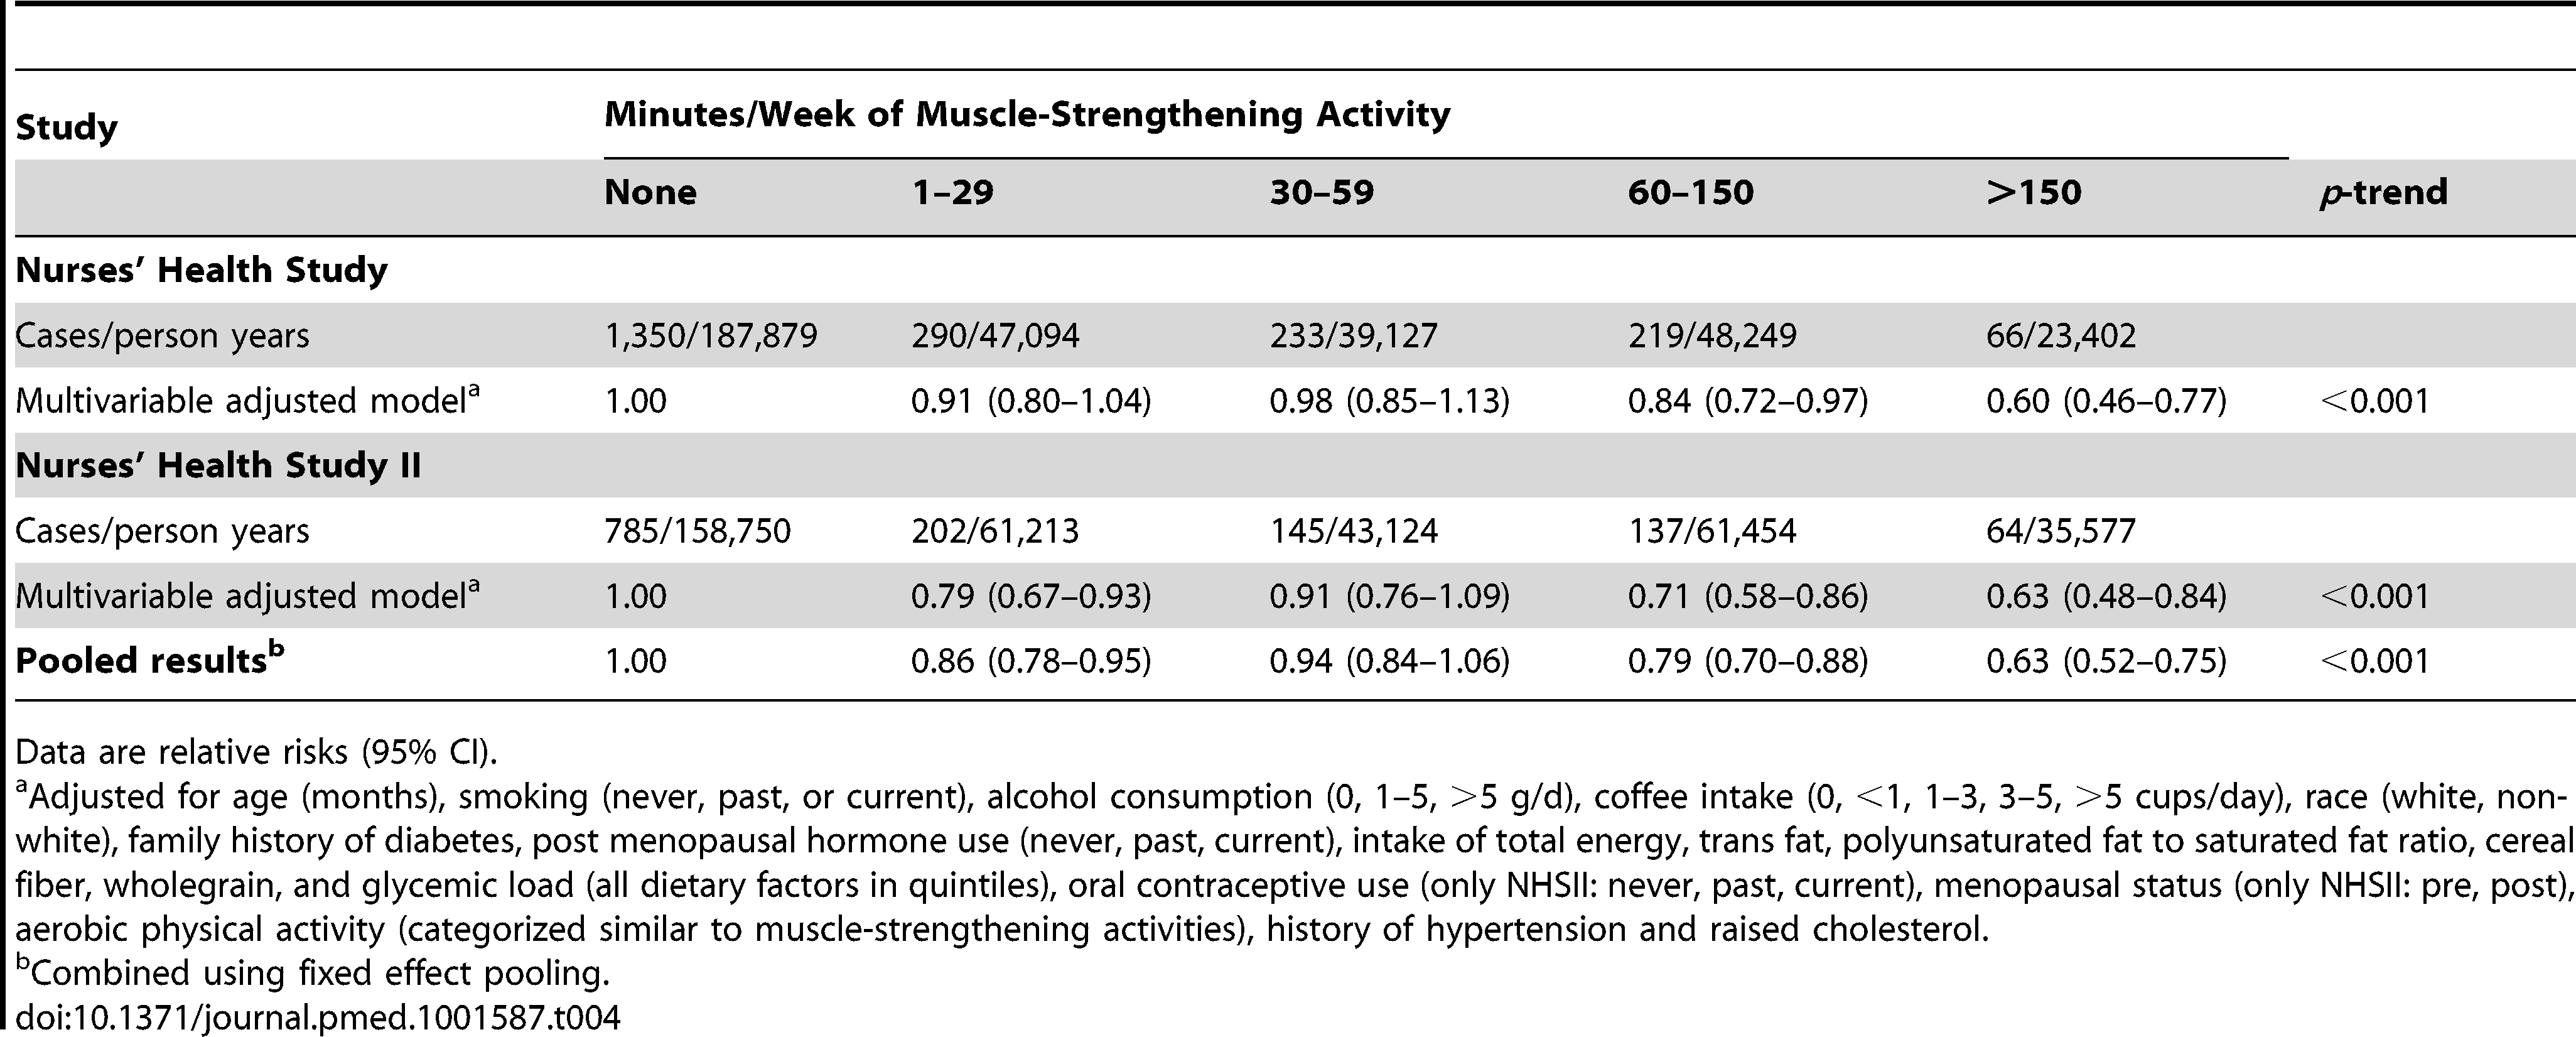 Total muscle-strengthening and conditioning activities and risk of type 2 diabetes in women from the Nurses' Health Study and Nurses' Health Study II with additional adjustment for history of hypertension and raised cholesterol.